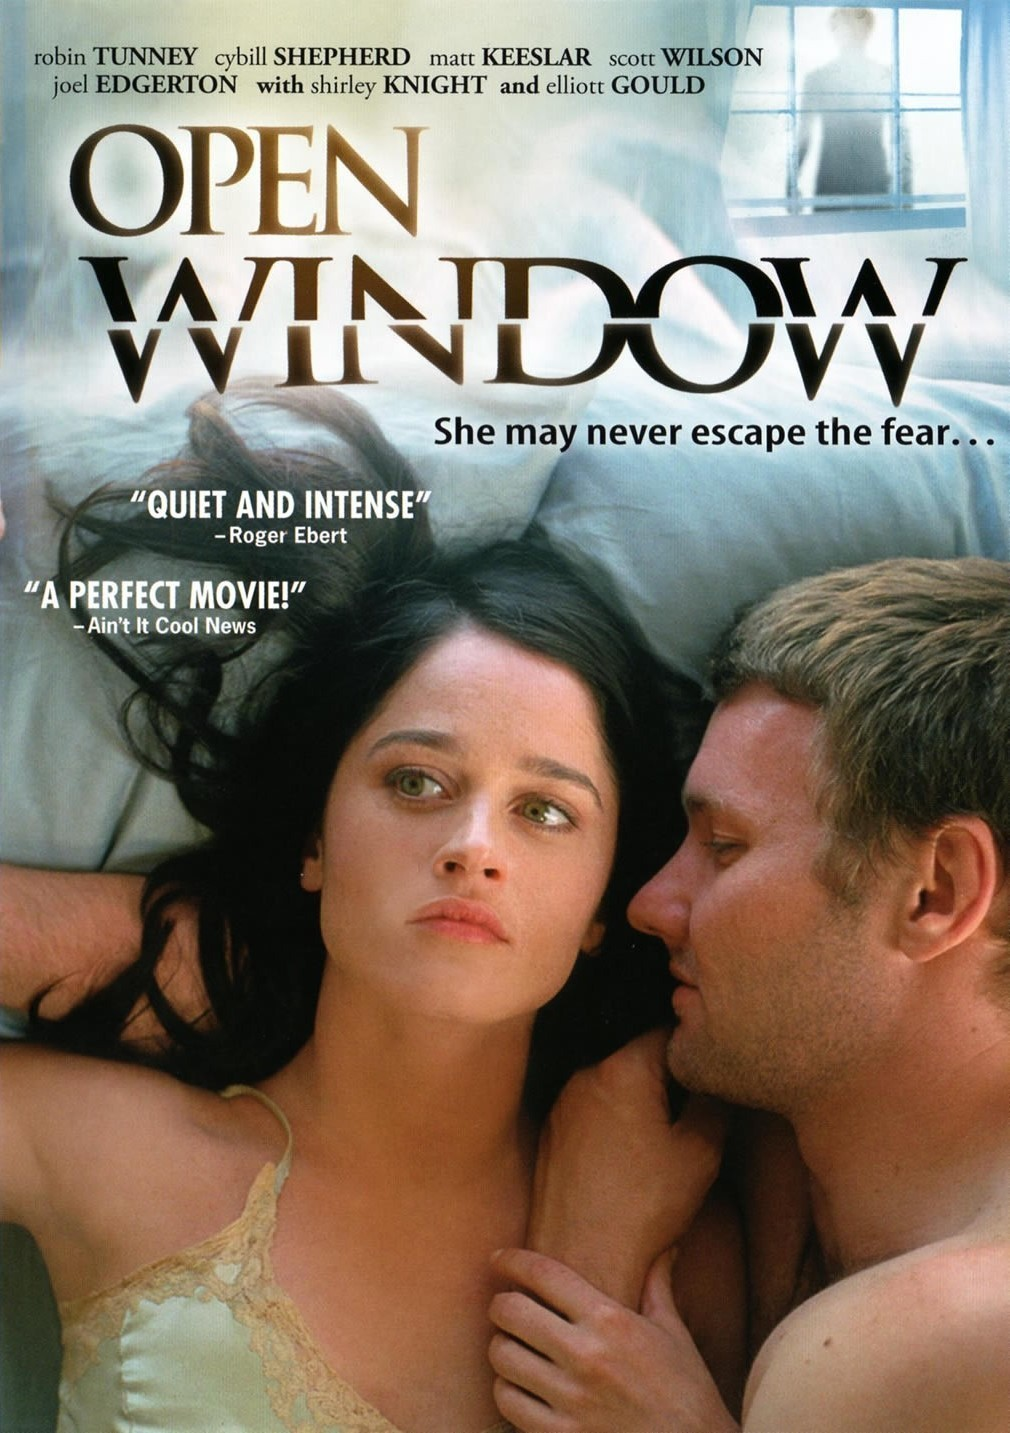 Open window 2006